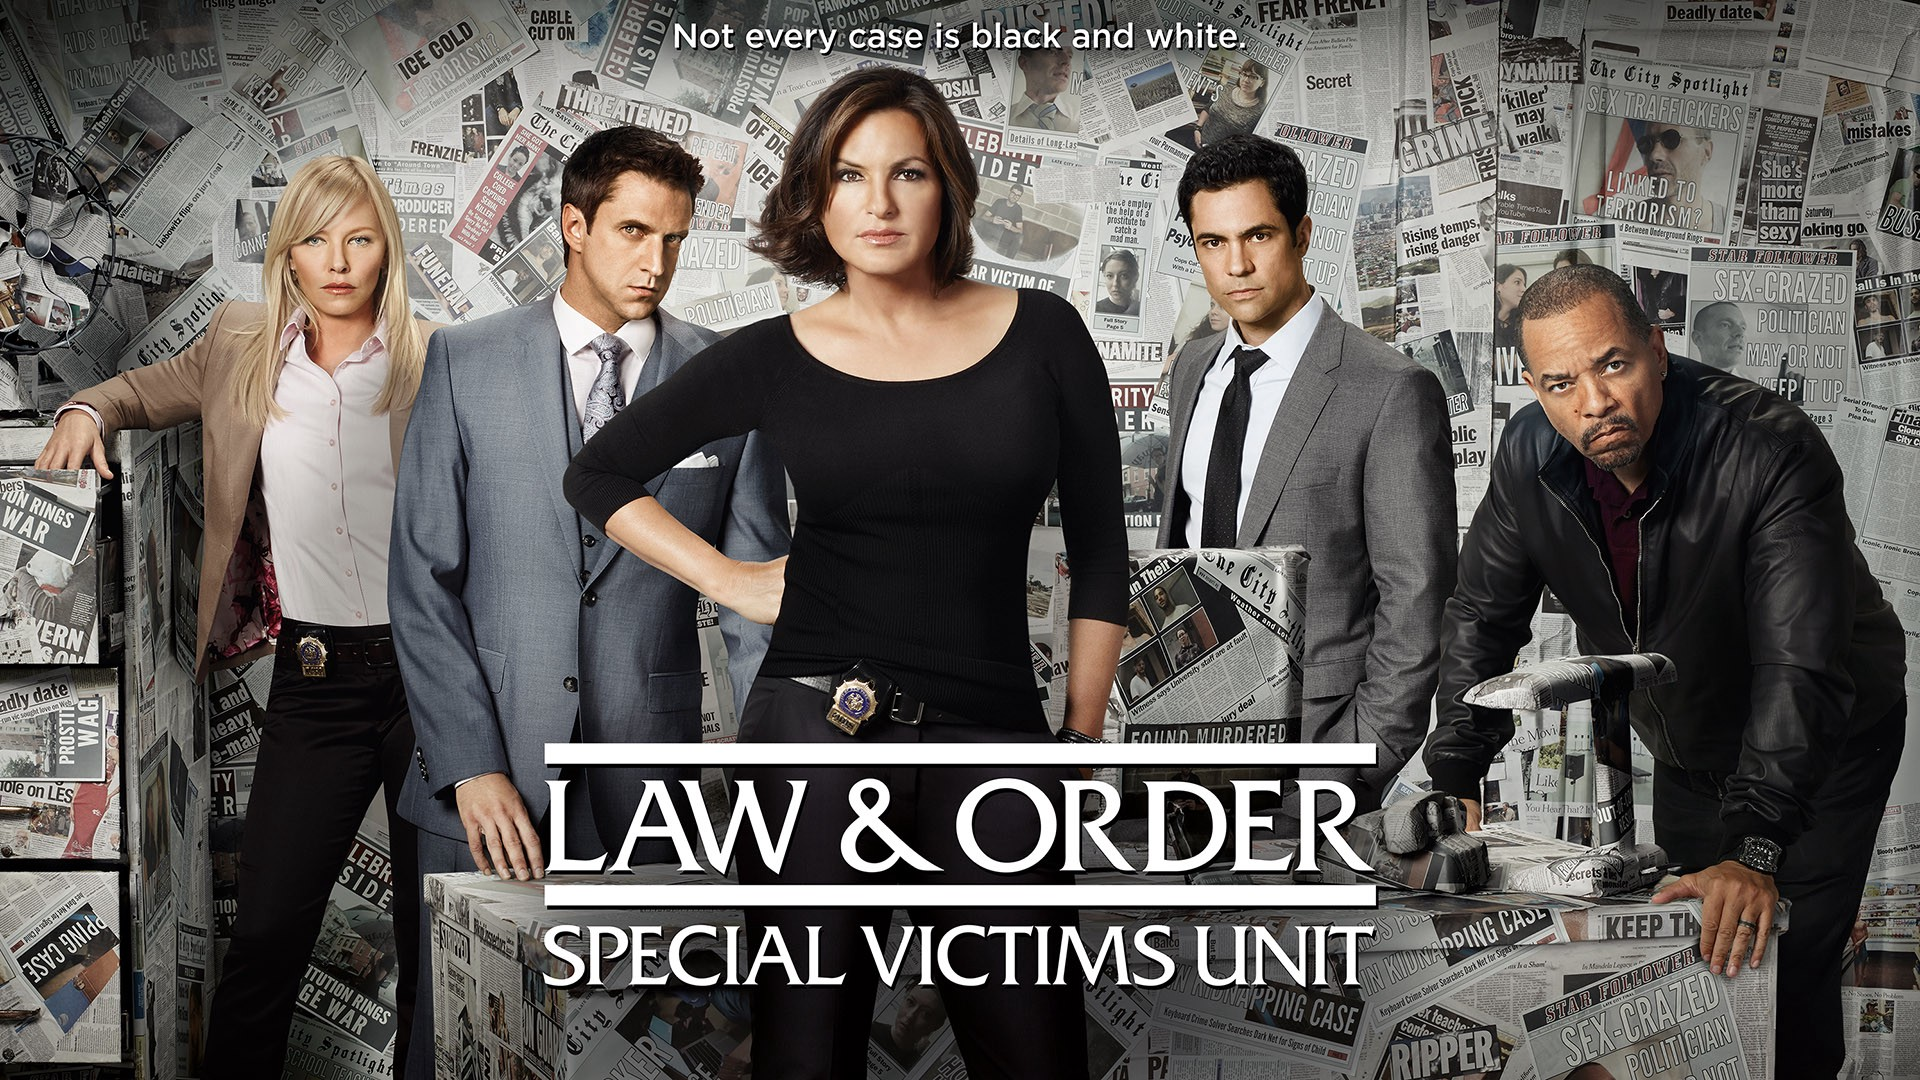 Law & Order: Special Victims Unit S21-E09 — Watch 4kHD